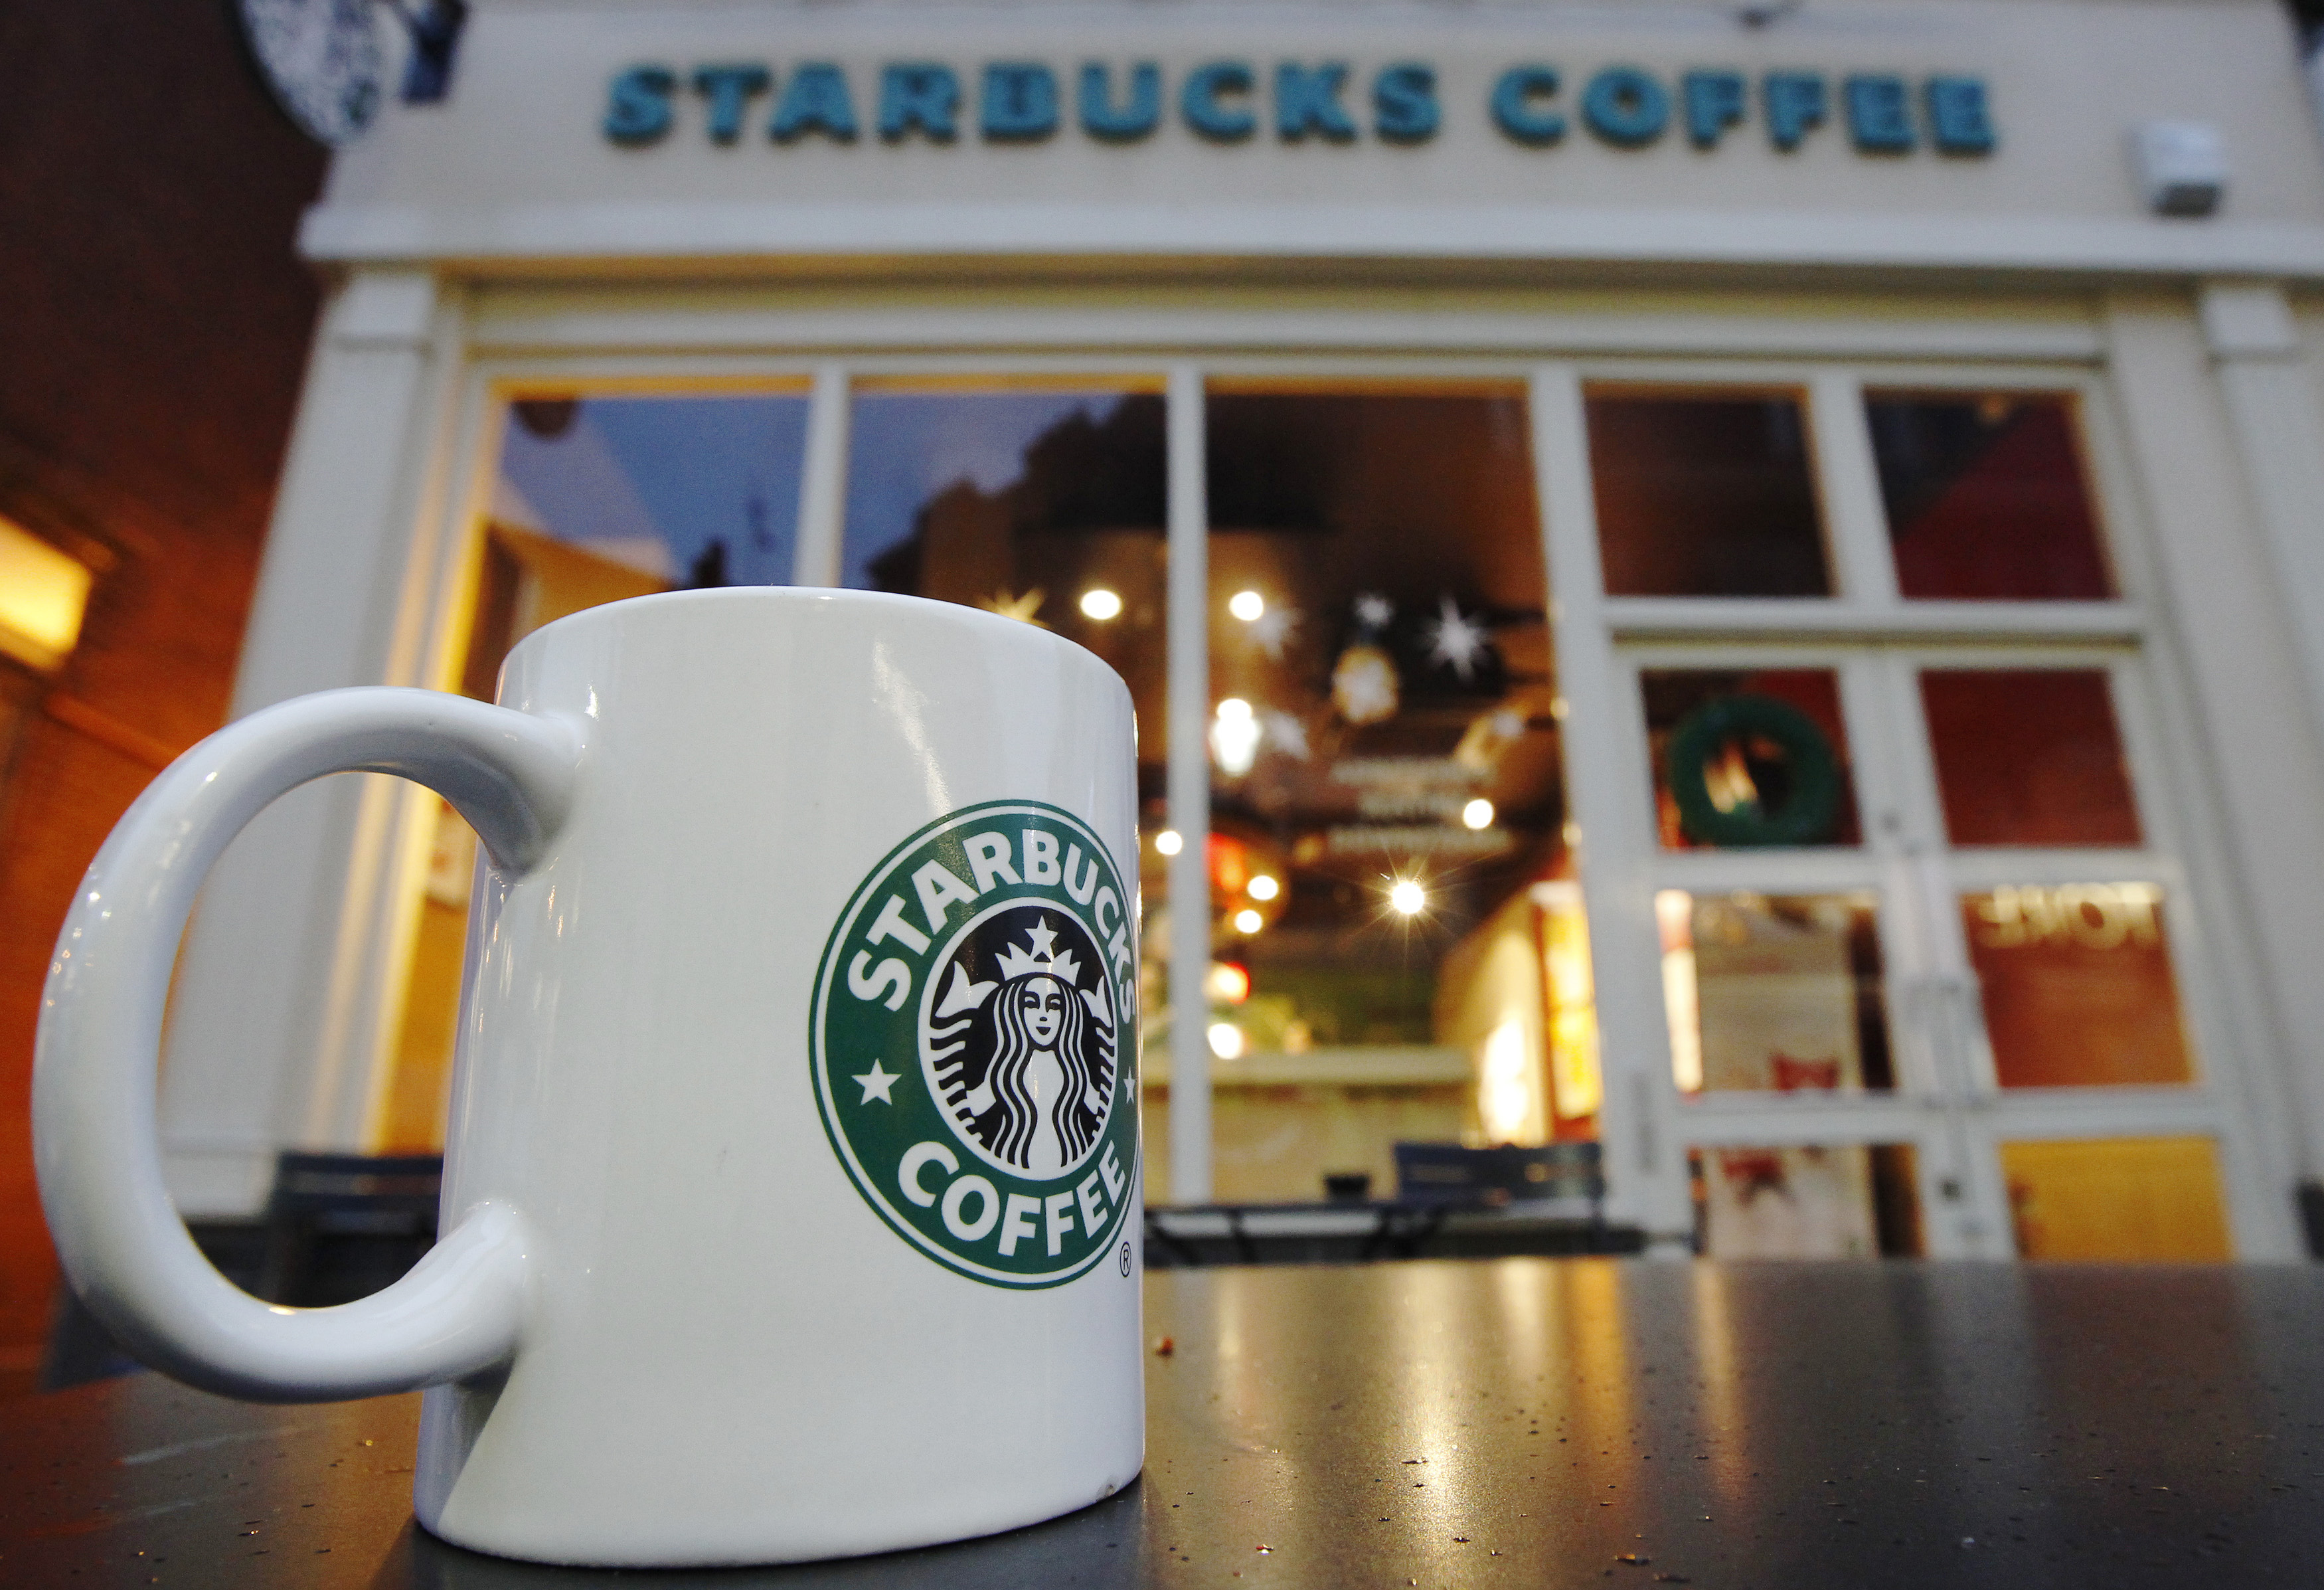 Starbucks To Open At Least 3 000 Stores Over Next Five Years